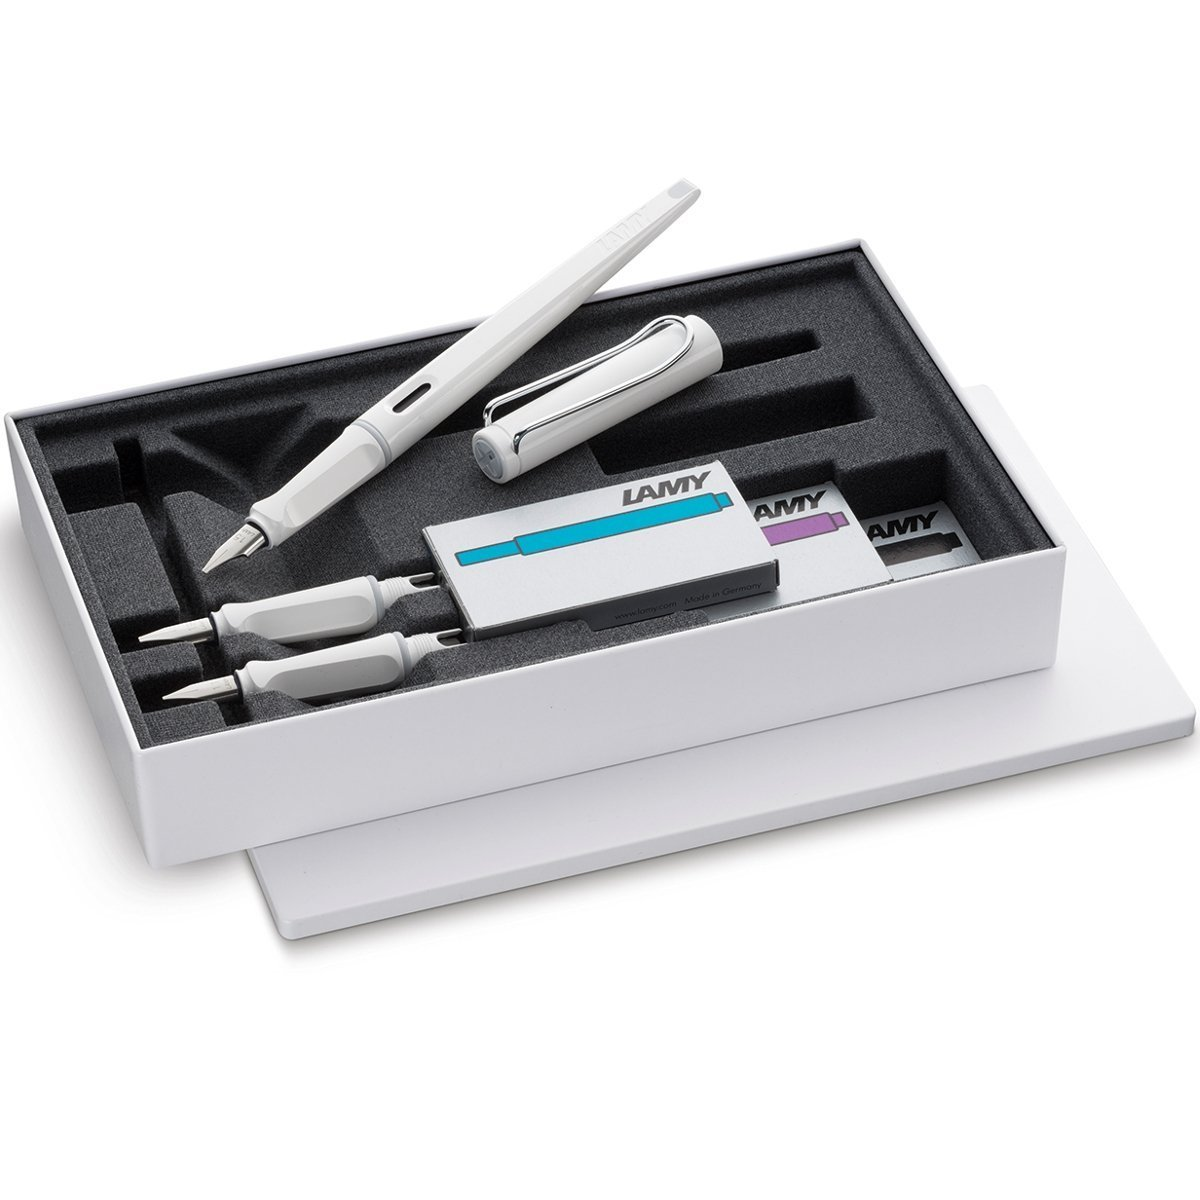 LAMY Joy Calligraphy Set in White - Special Edition with Black, Violet and Turquoise Ink Cartridges